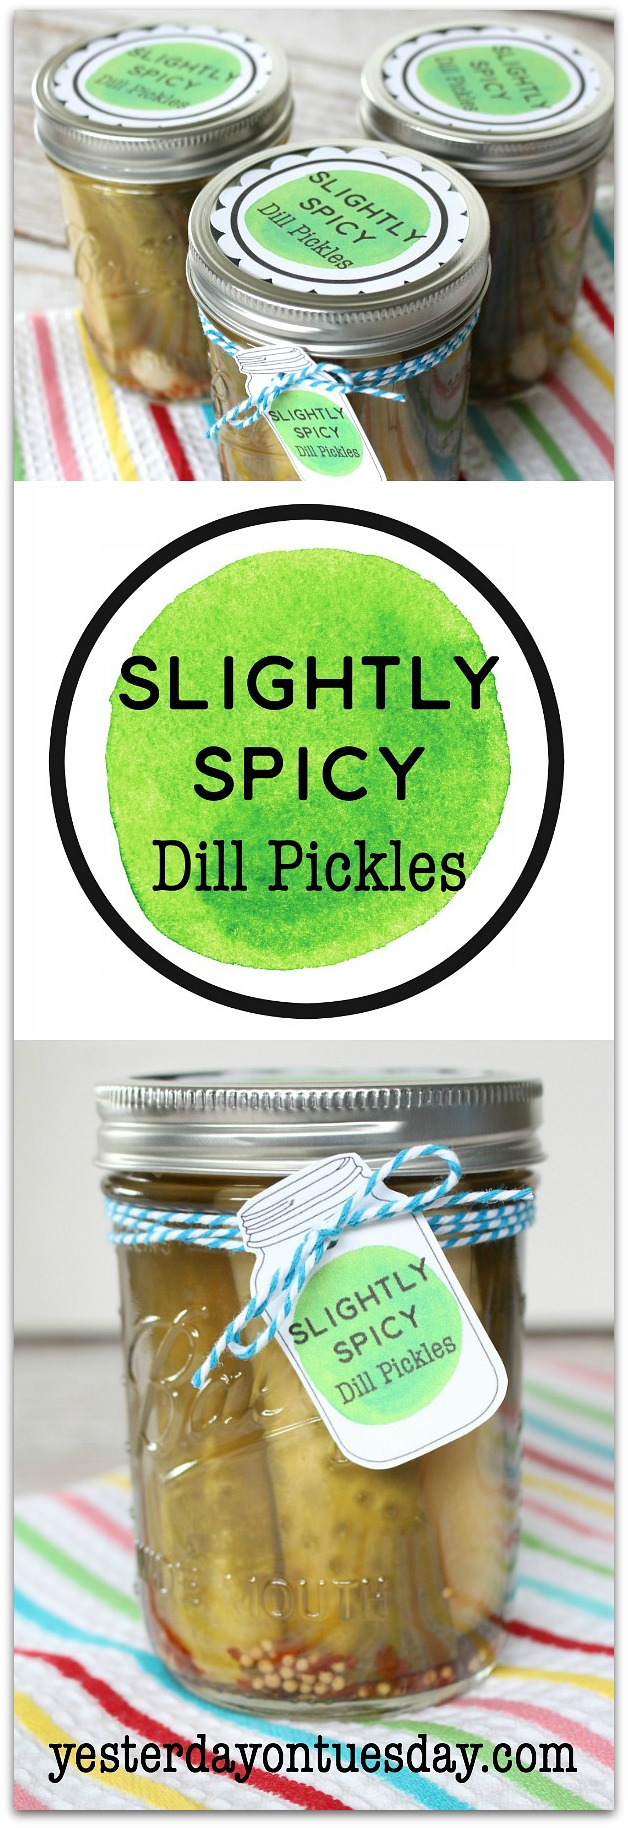 Slightly Spicy Dill Pickles Recipe: How to make deliciously spicy dill pickles at home! Perfect for barbecues and picnics.